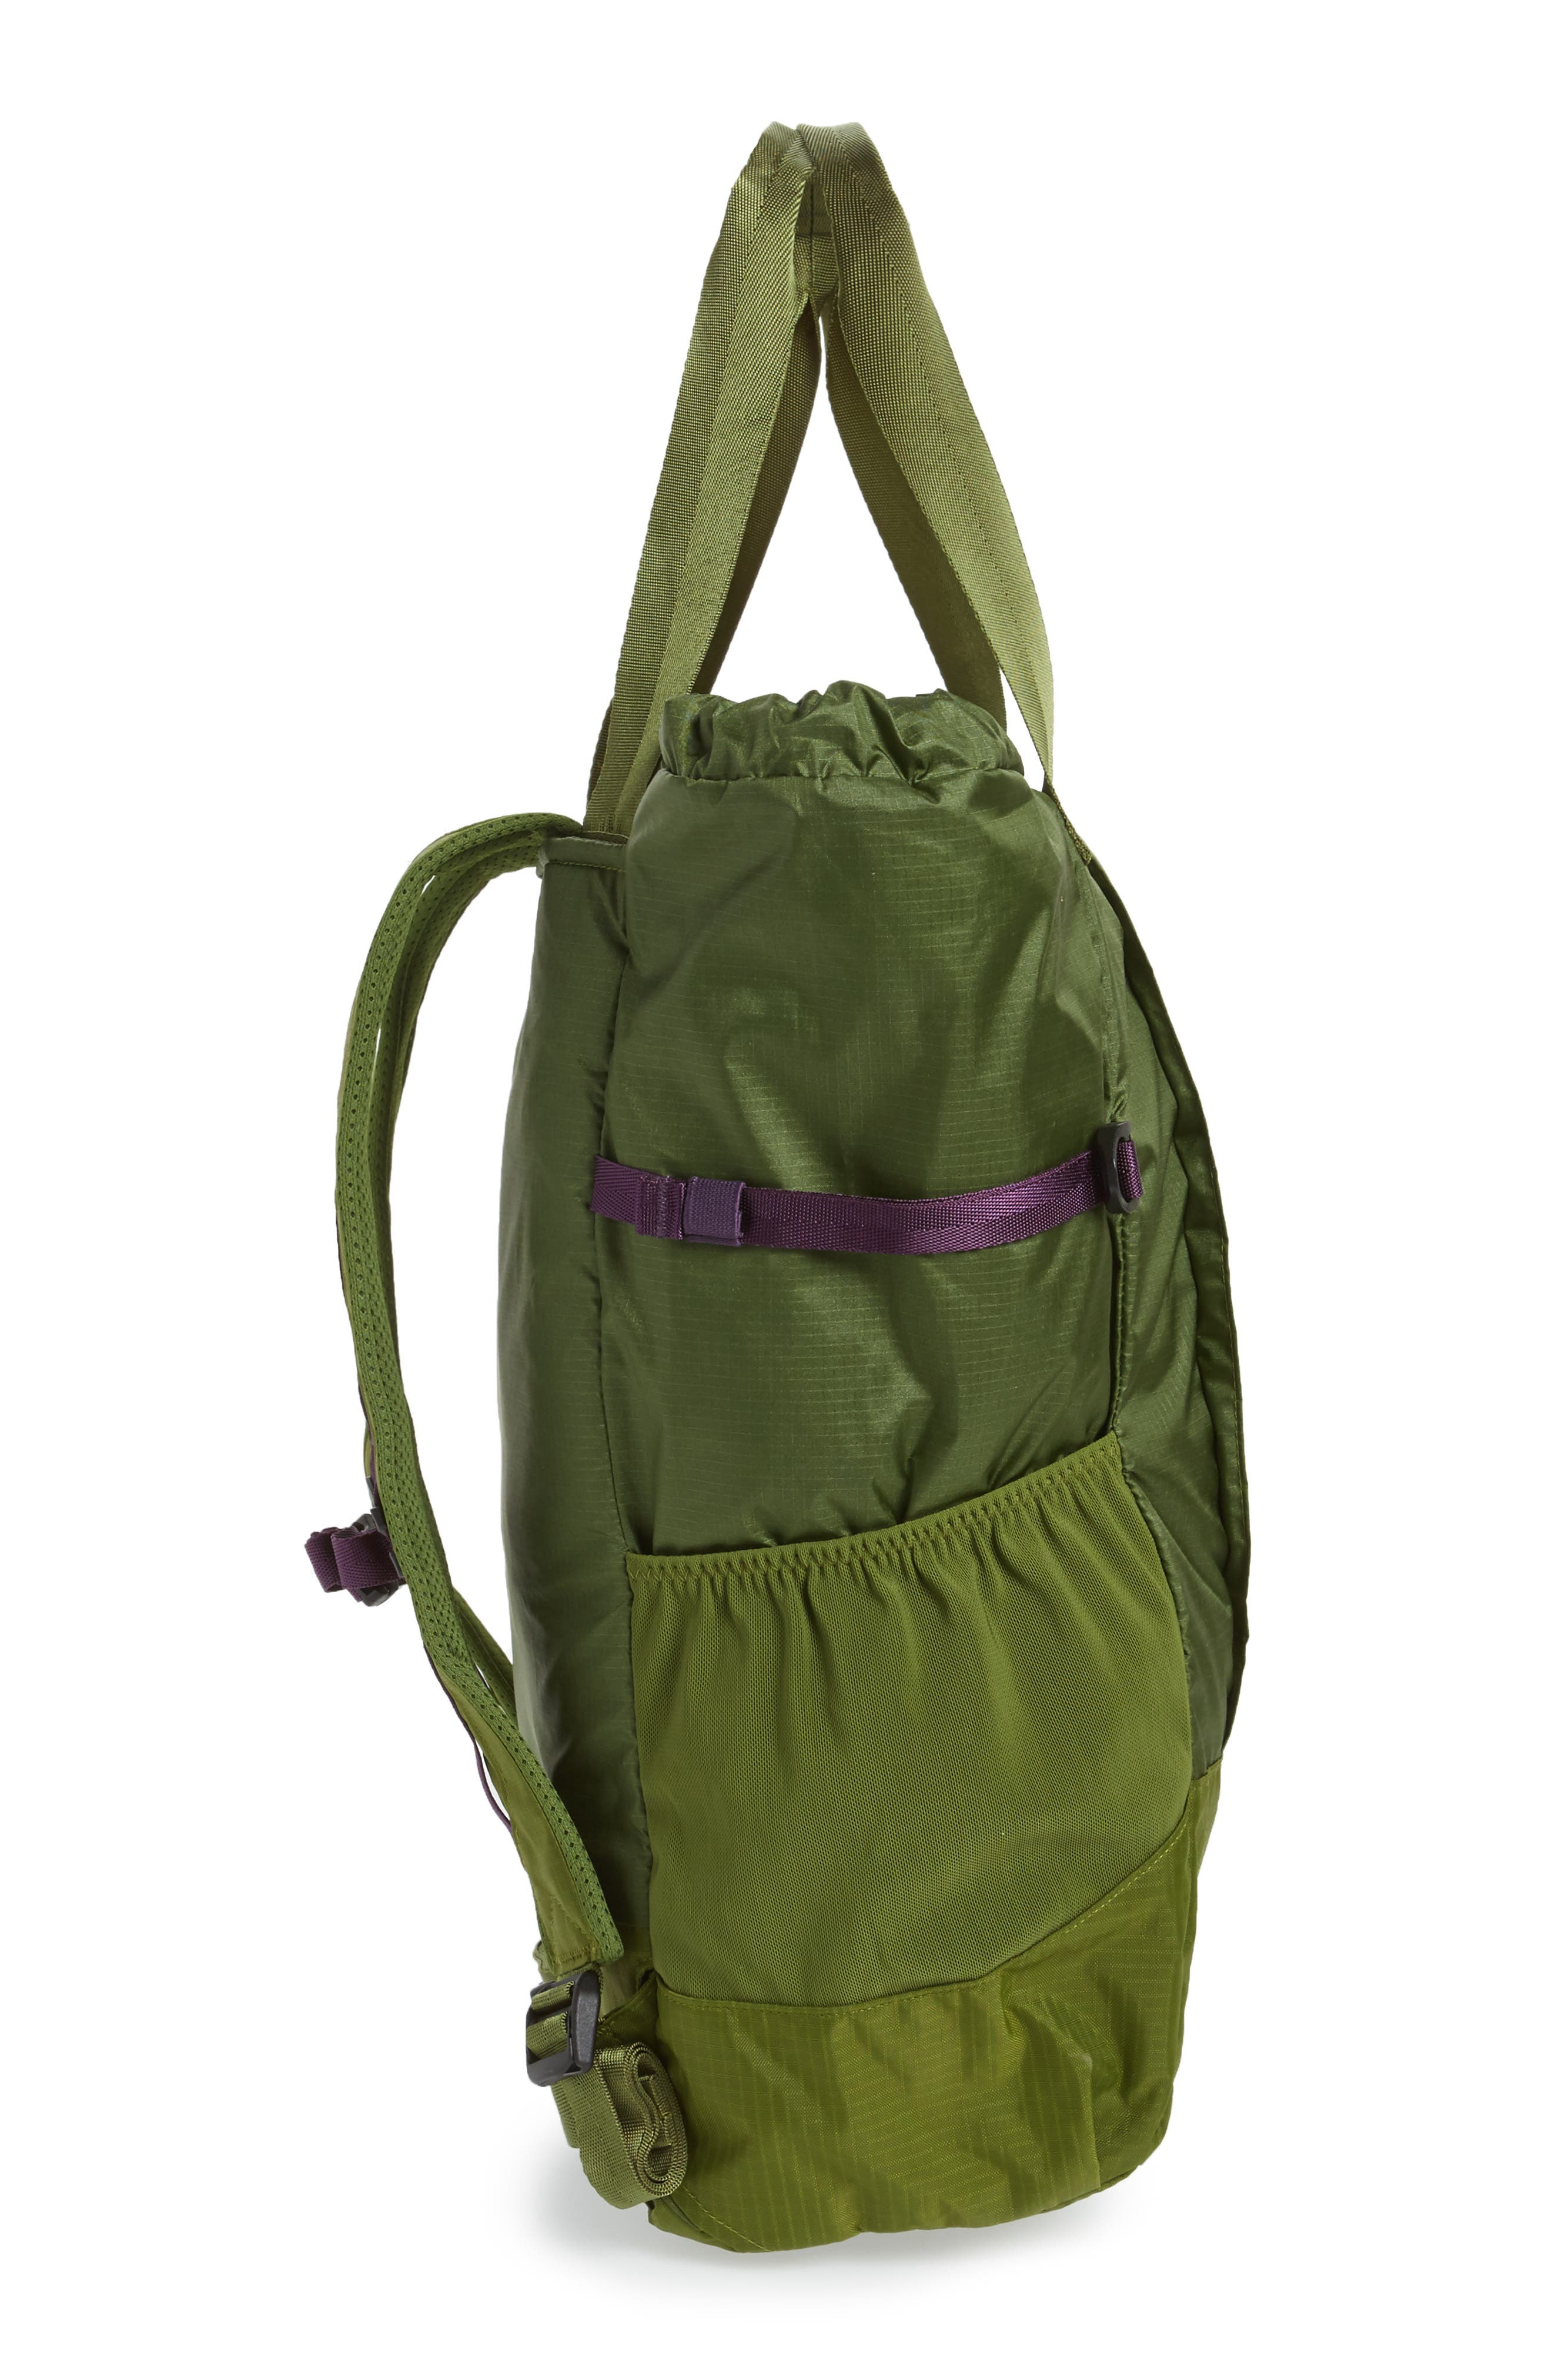 Lightweight Travel Tote Pack,                             Alternate thumbnail 5, color,                             305